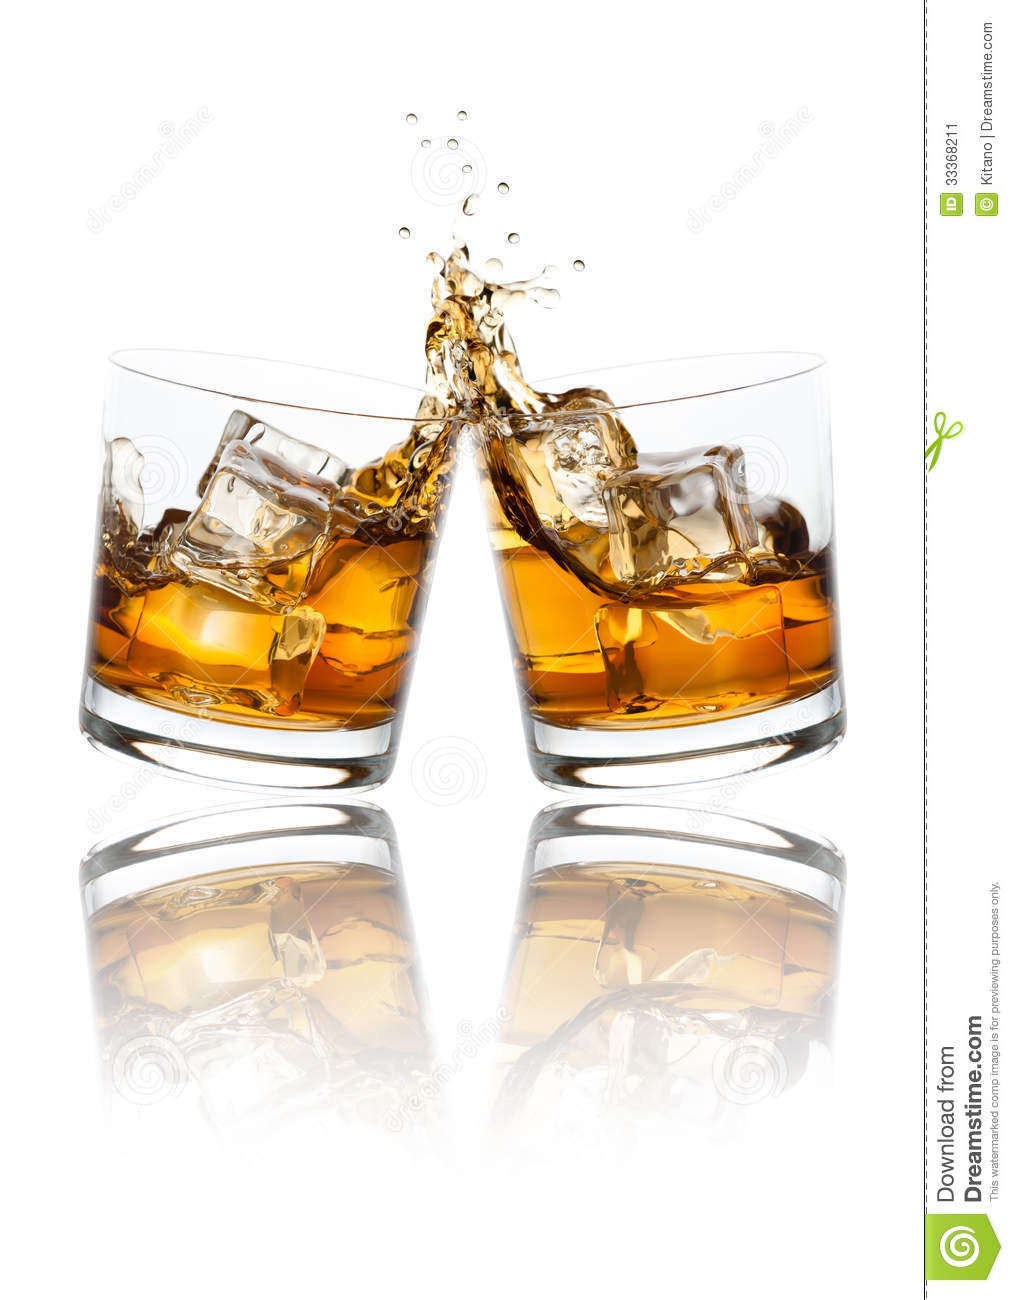 alcohol wallpapers free download